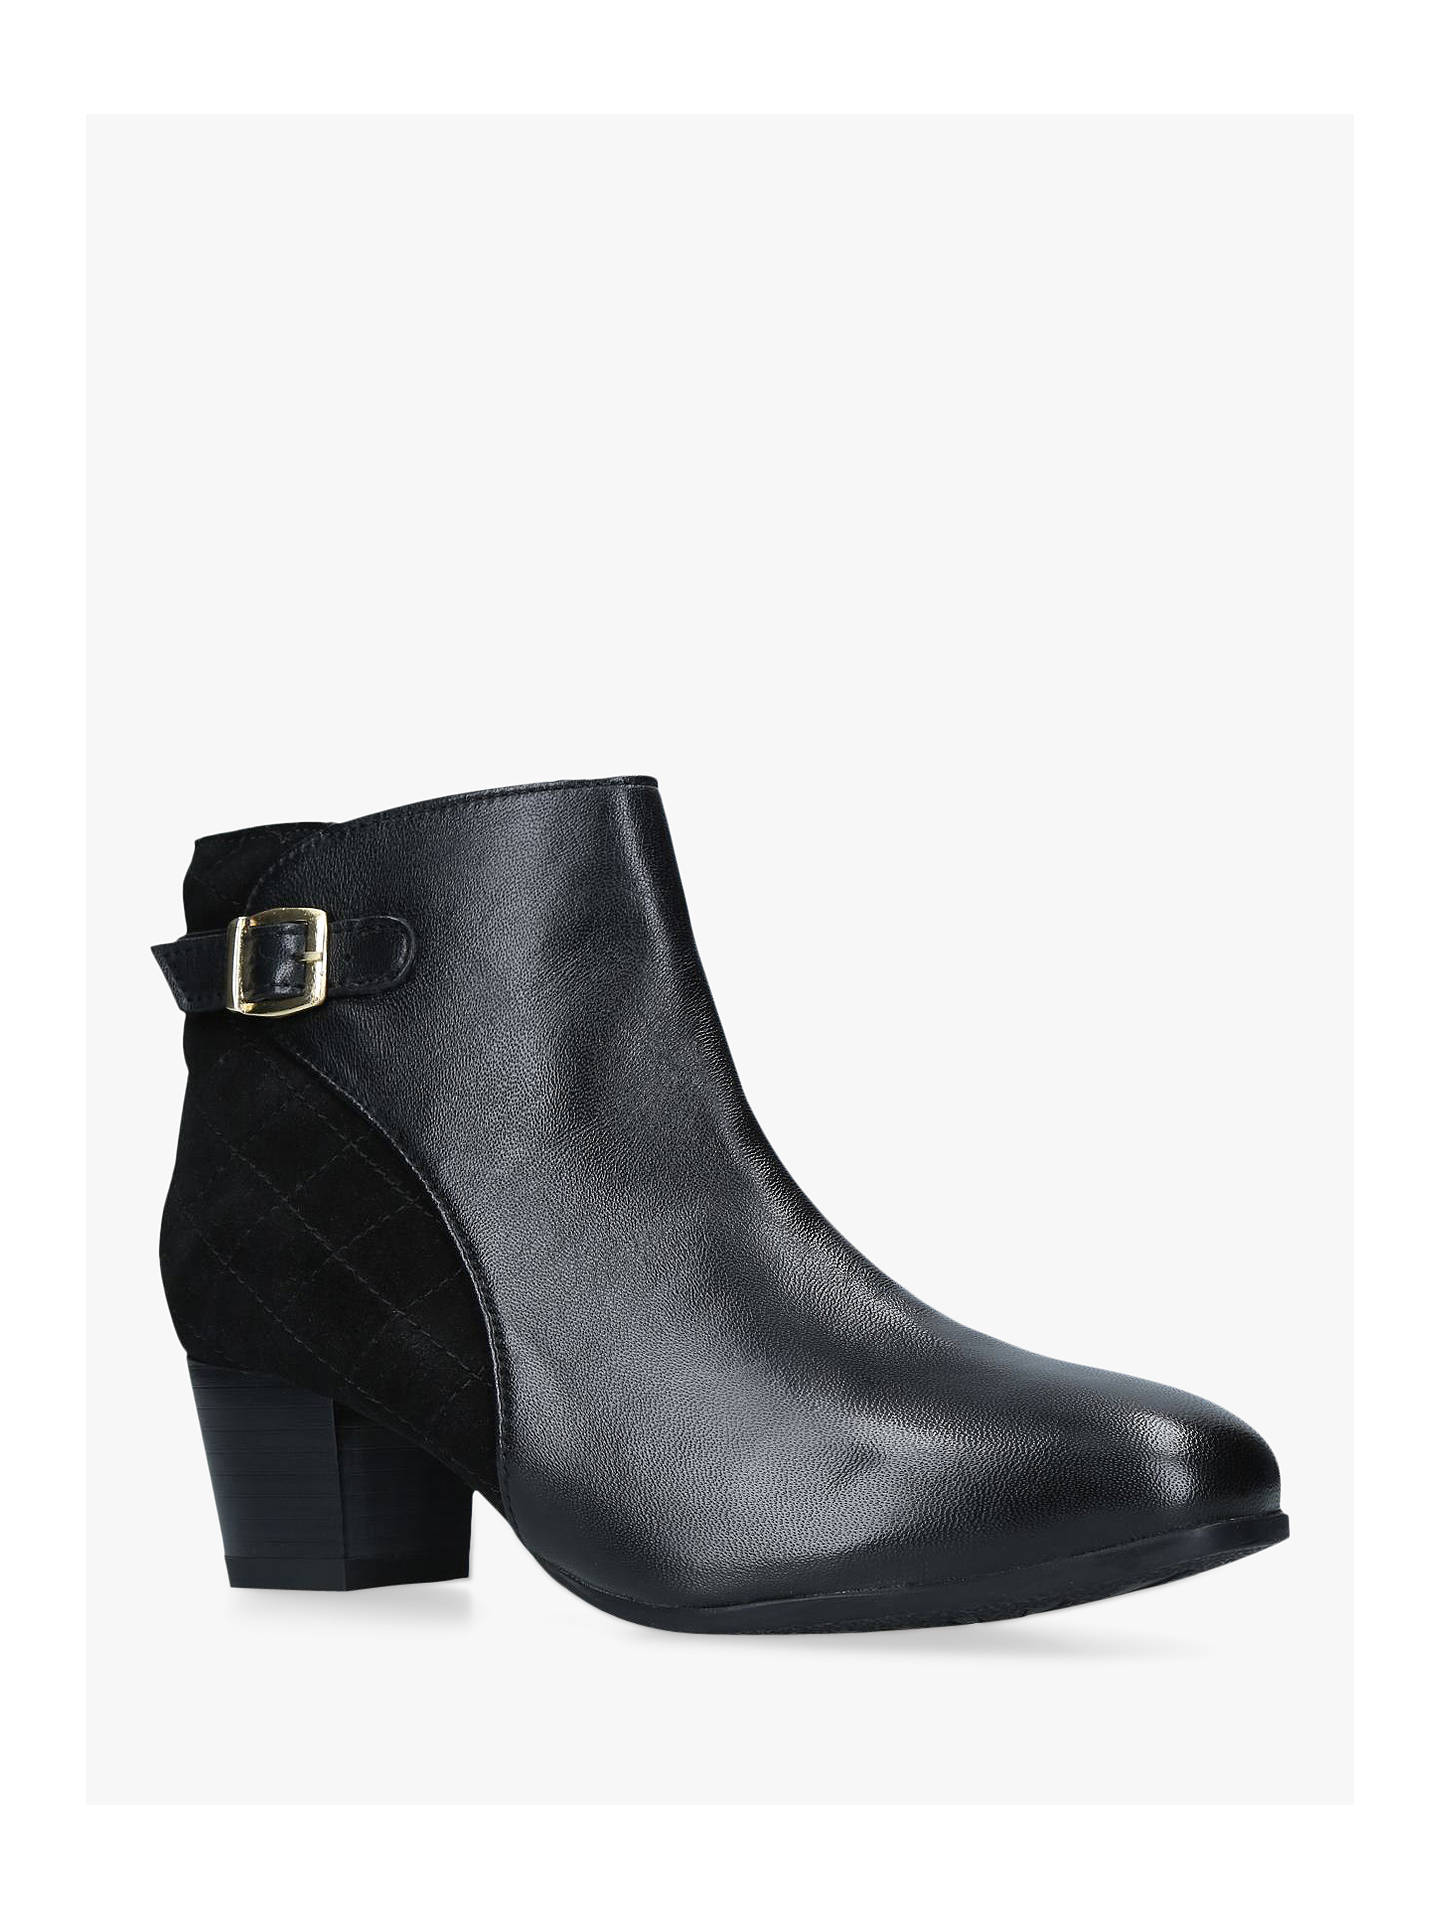 BuyCarvela Rule Block Heel Ankle Boots, Black Suede/Leather, 3 Online at johnlewis.com